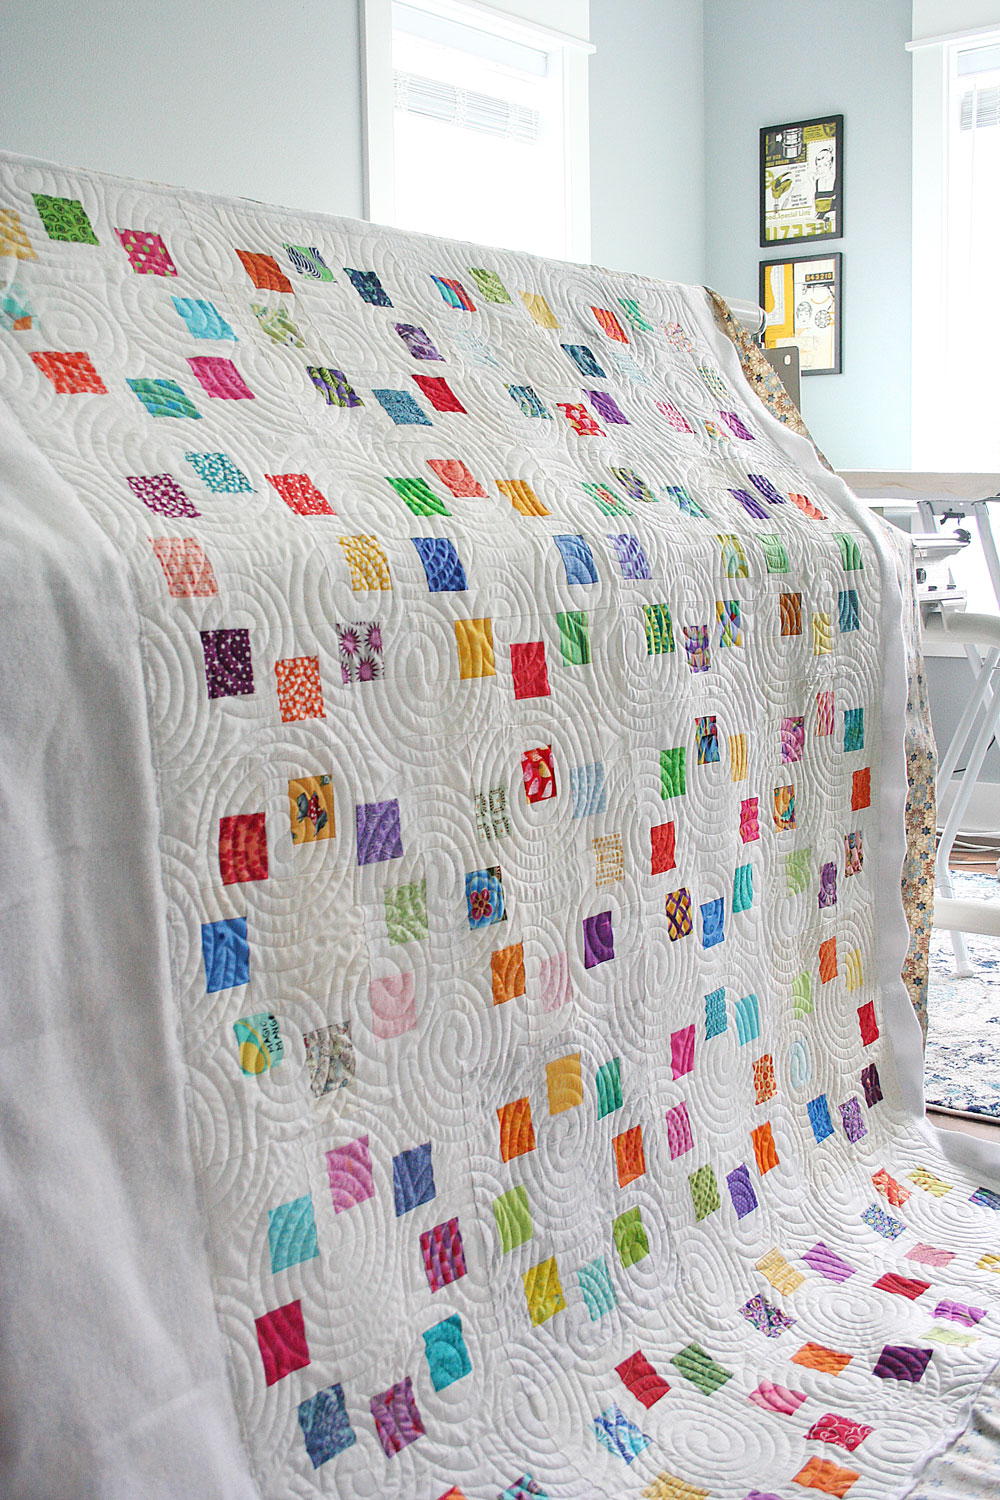 Do you have questions about hiring a longarm quilter? This in-depth guide answers all of those questions from fabric to price to turnaround time.